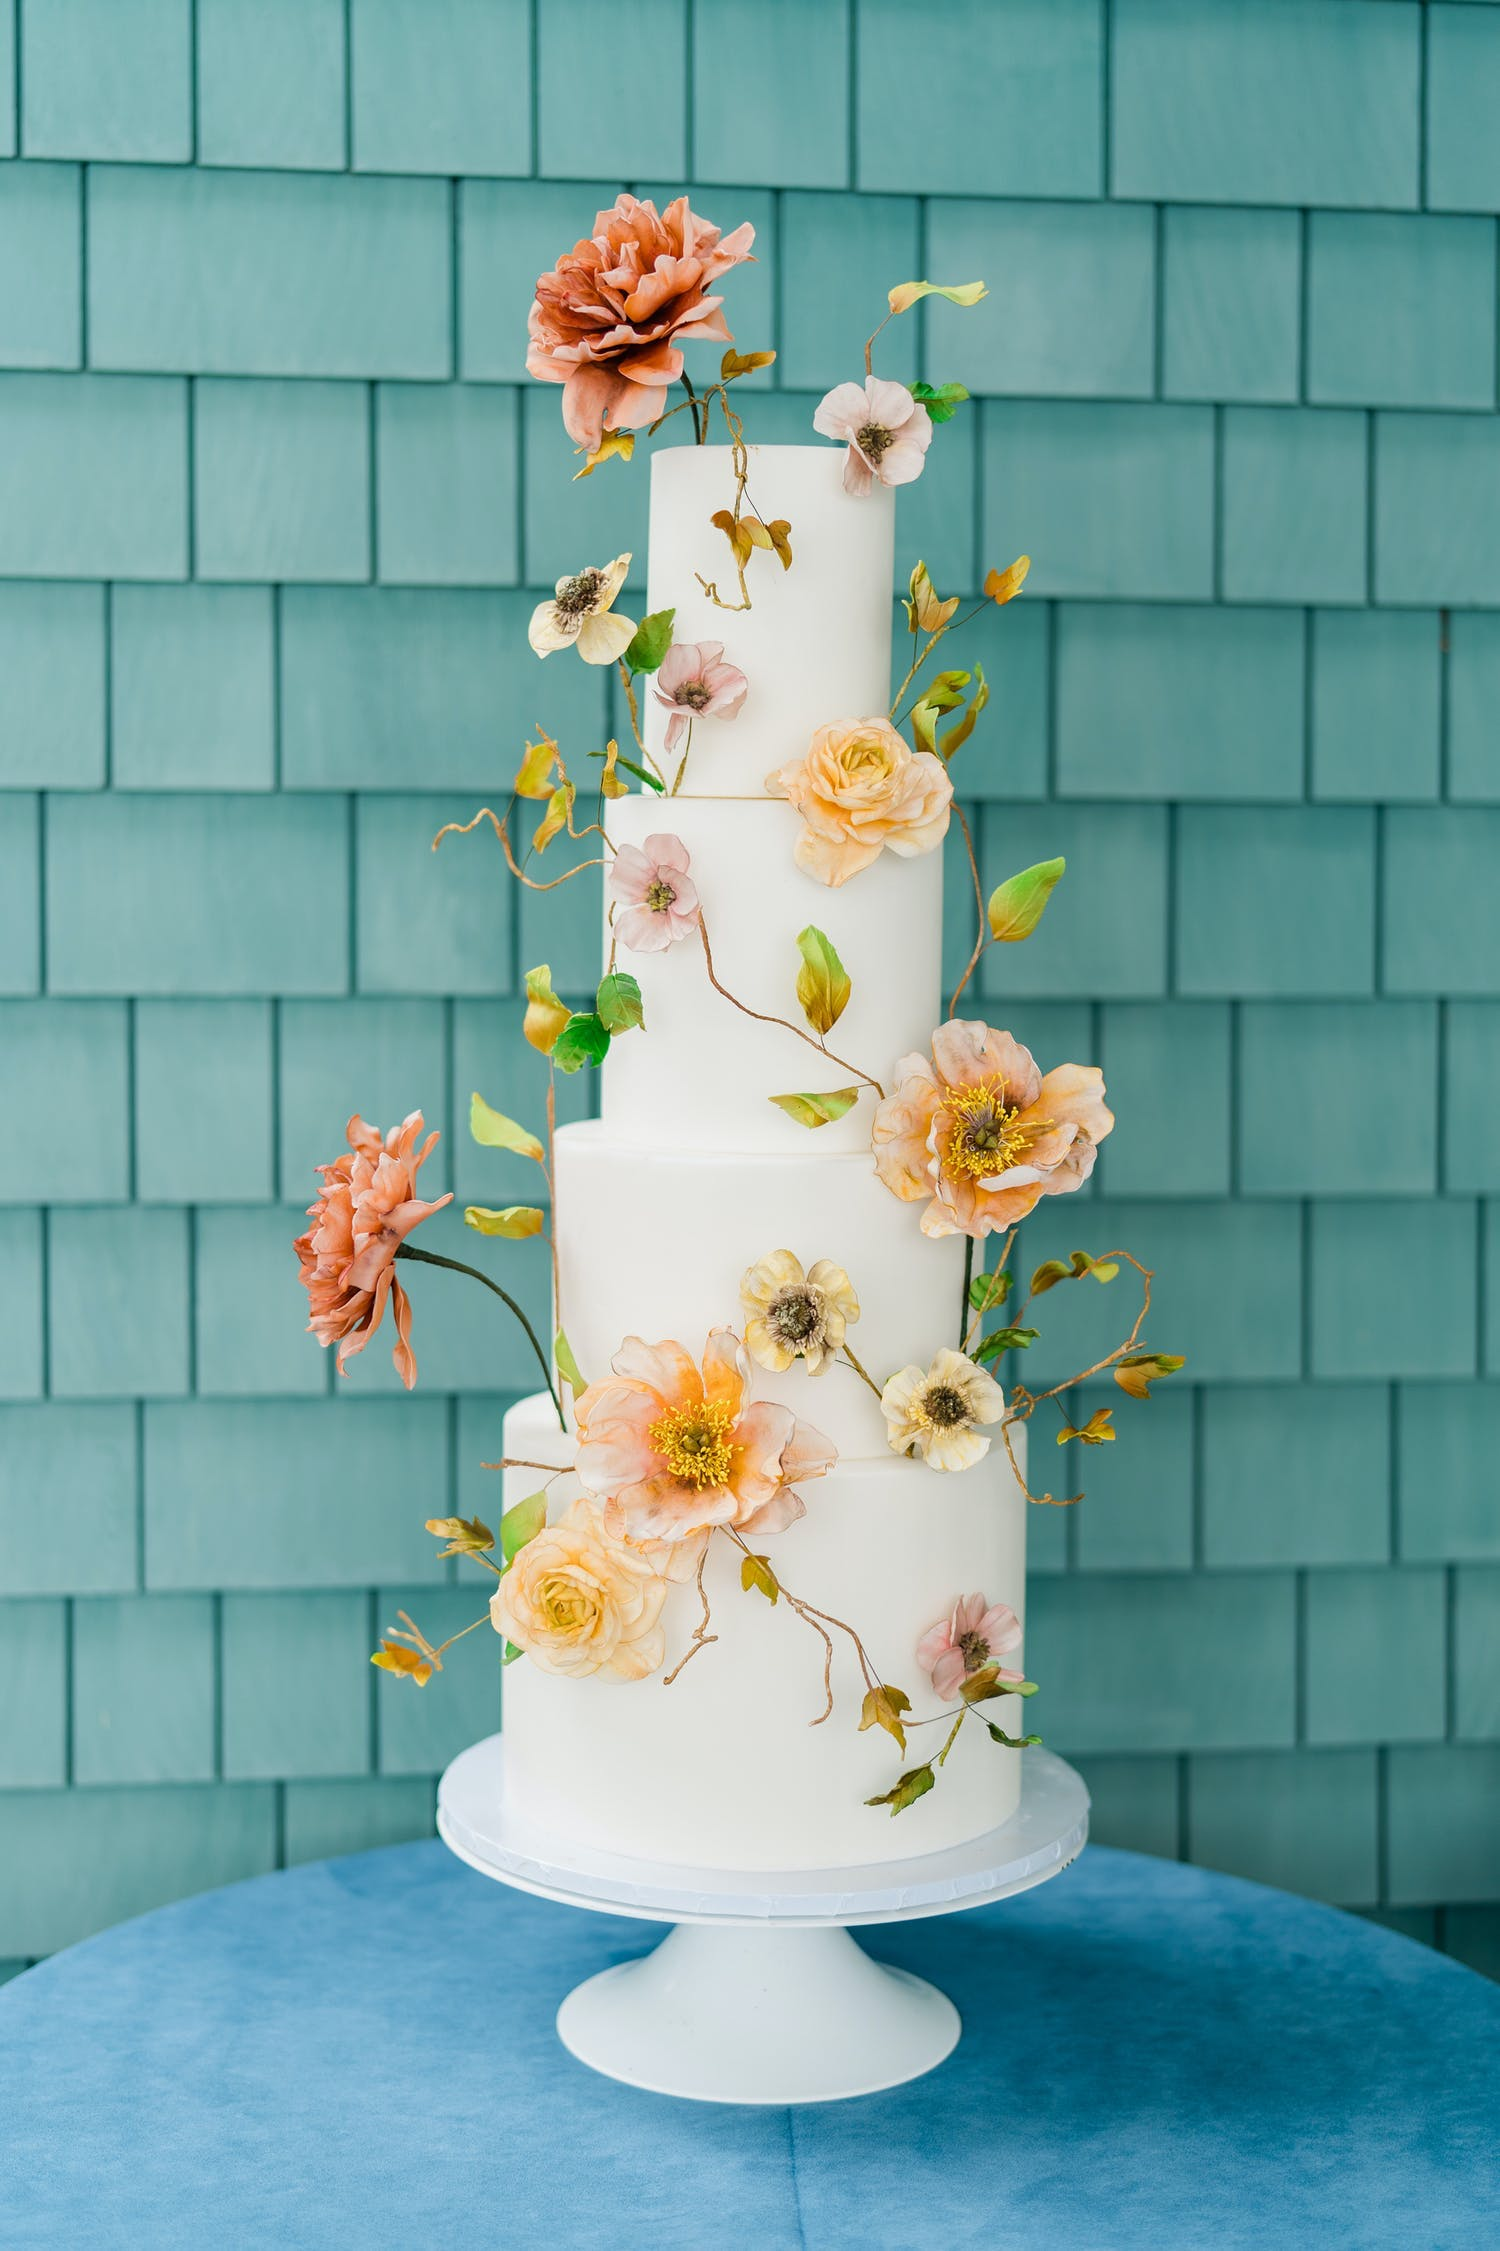 Simple and four-tier white wedding cake decorated with both flowers and stems | PartySlate